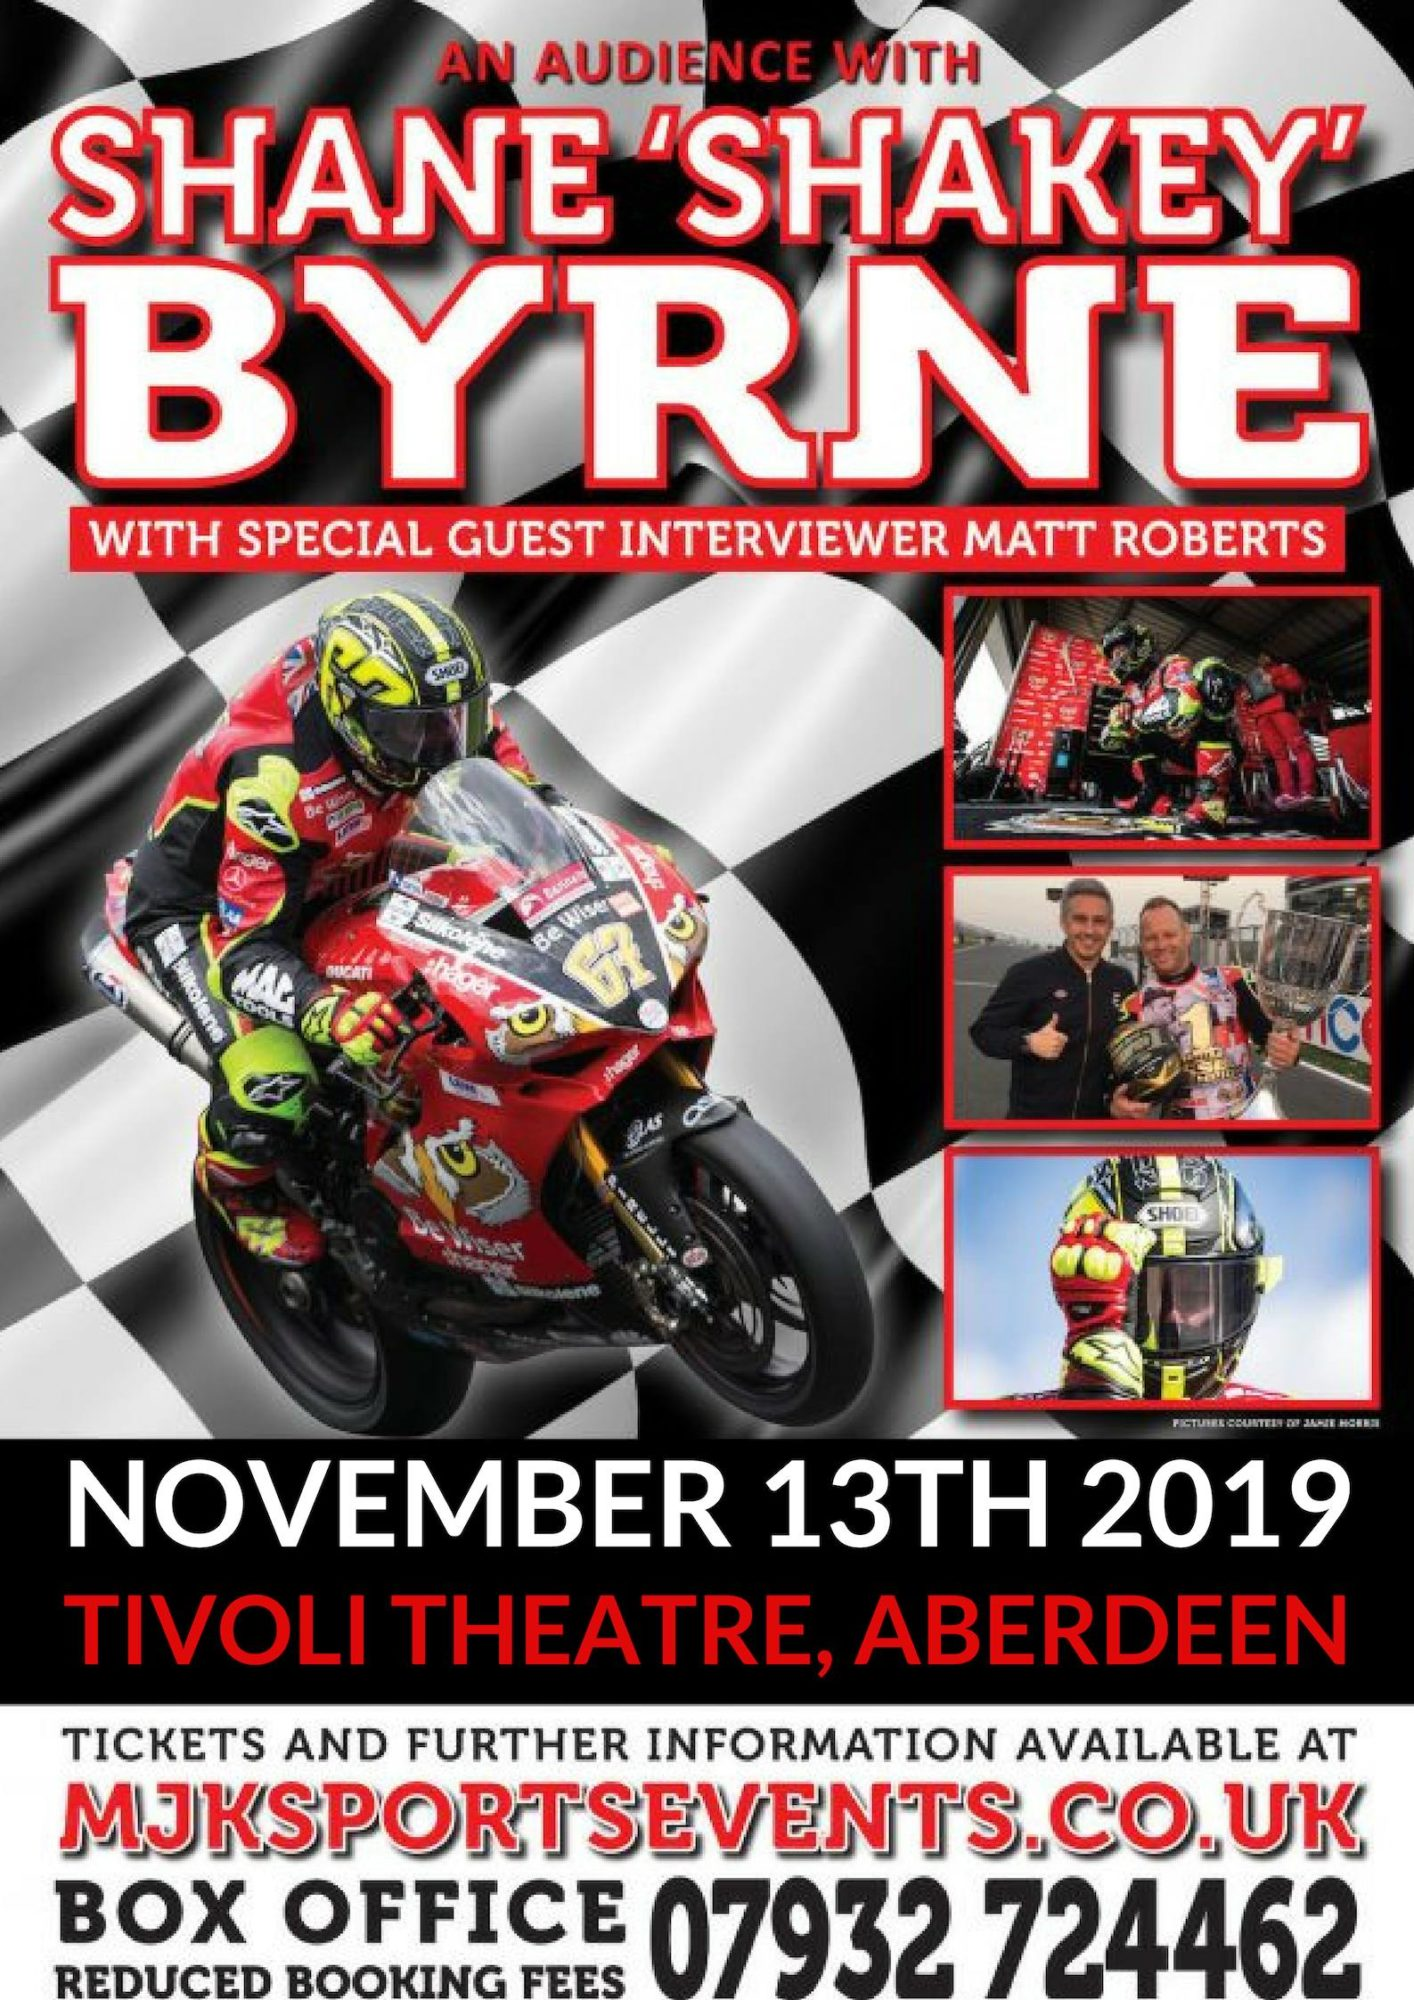 An Audience With Shane 'SHAKEY' Byrne